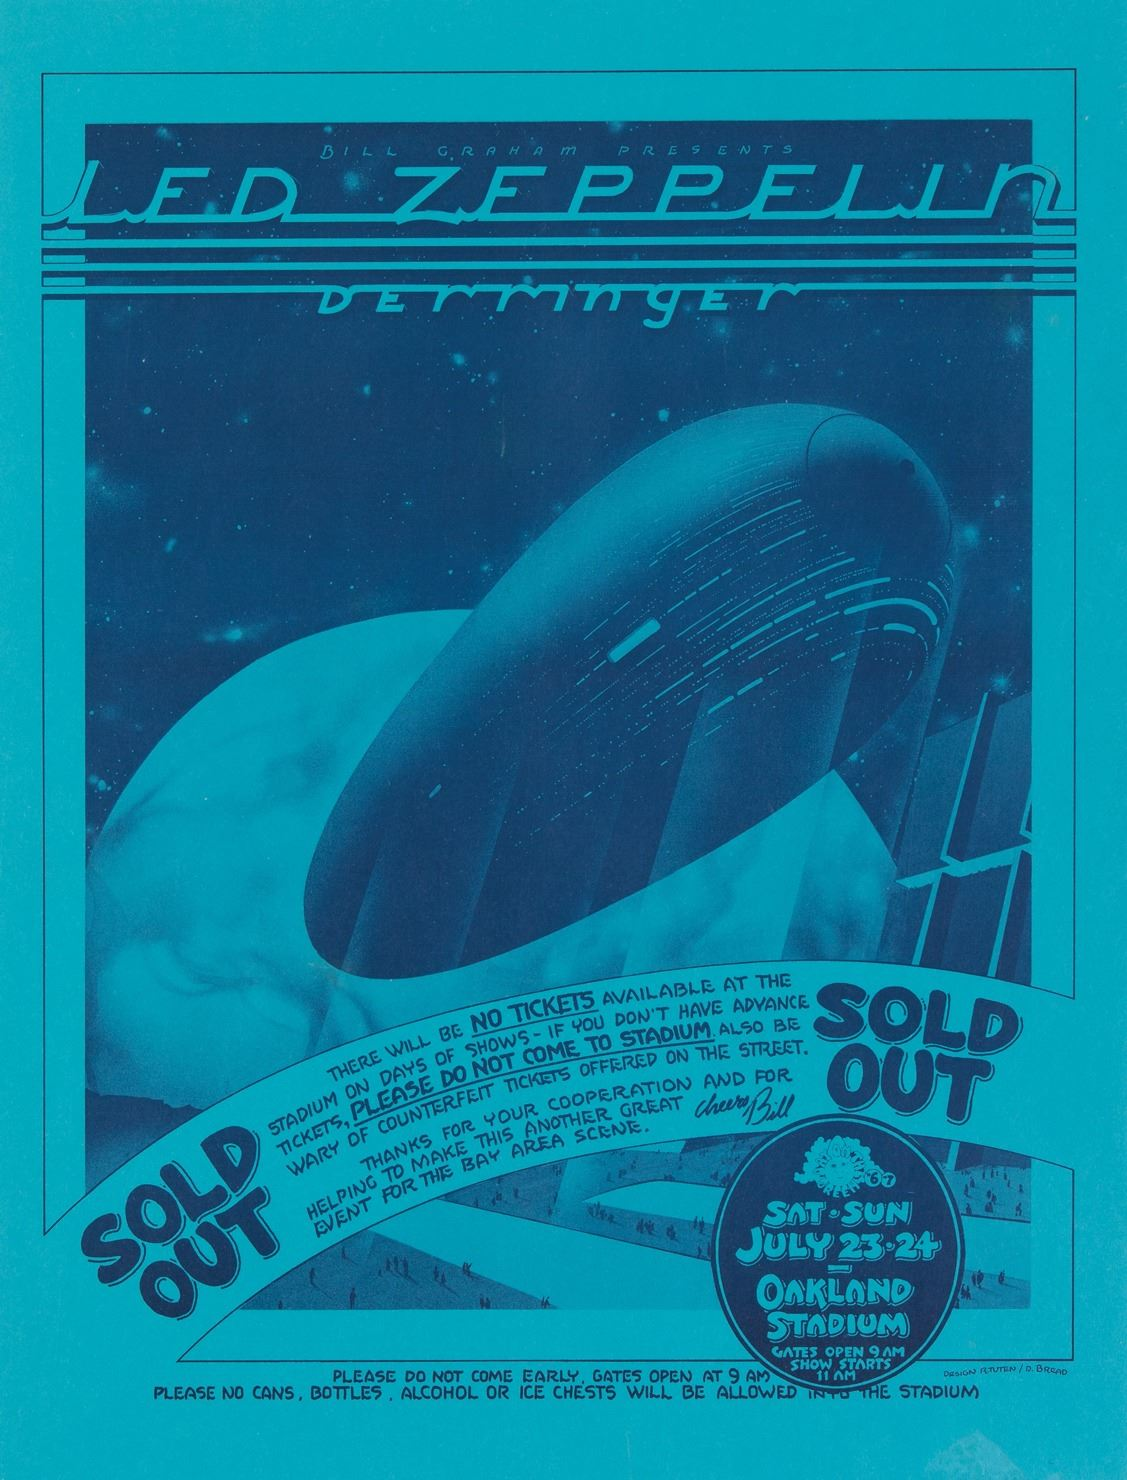 Led Zeppelin 1971 English Electric Magic Tour Poster Plus 1977 Oakland Sold Out Concert Poster